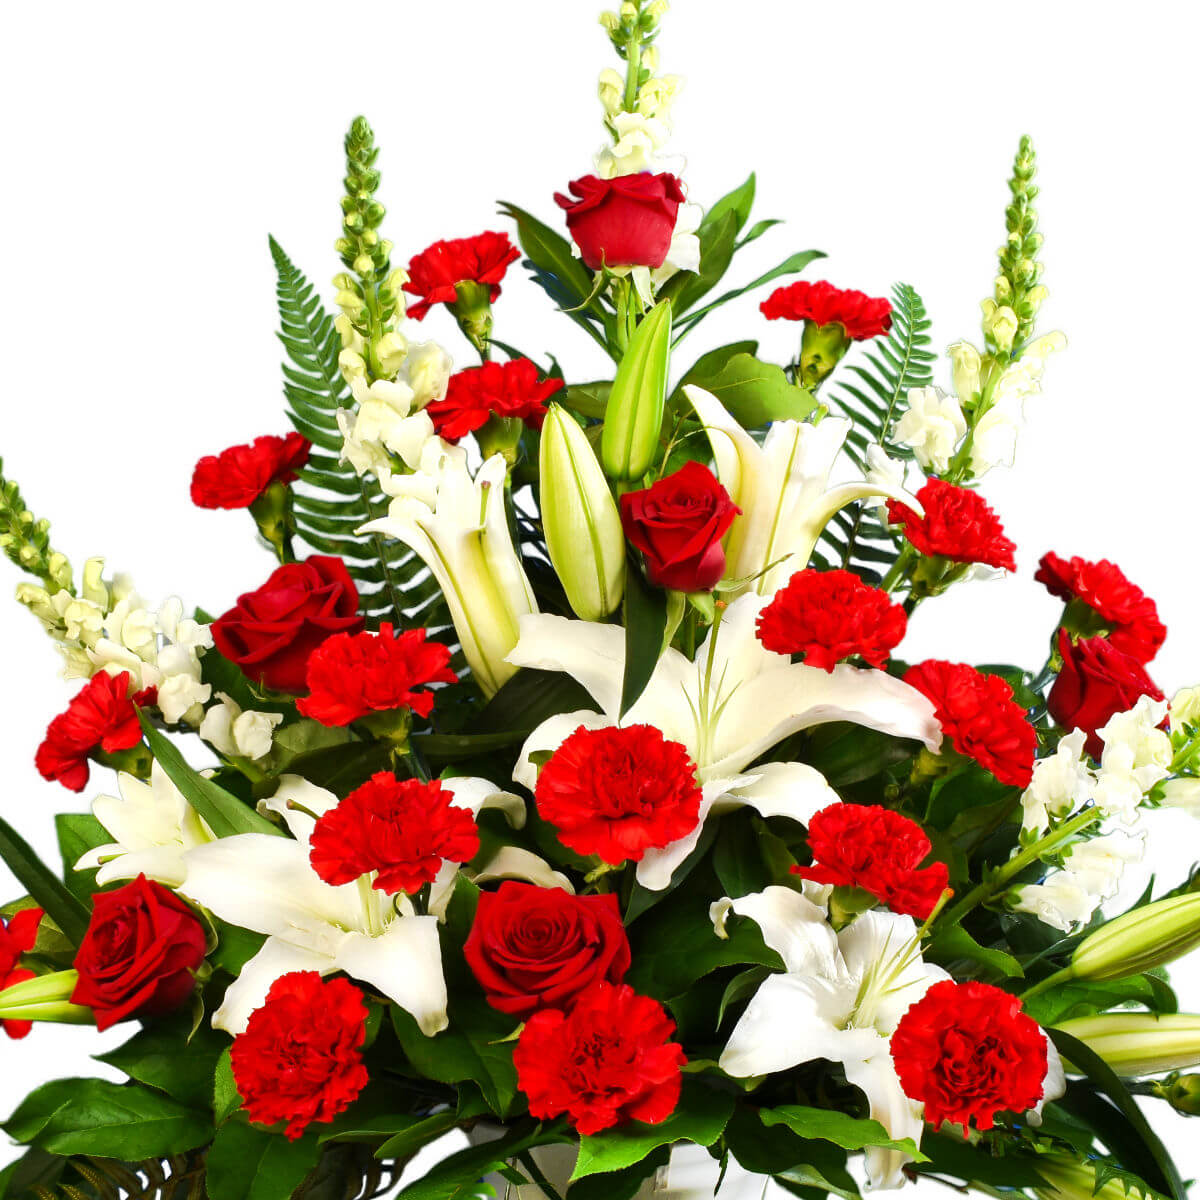 Best Funeral Flower Arrangements in Metro - Vancouver   Same Day Funeral Flower Delivery Adele Rae Florist